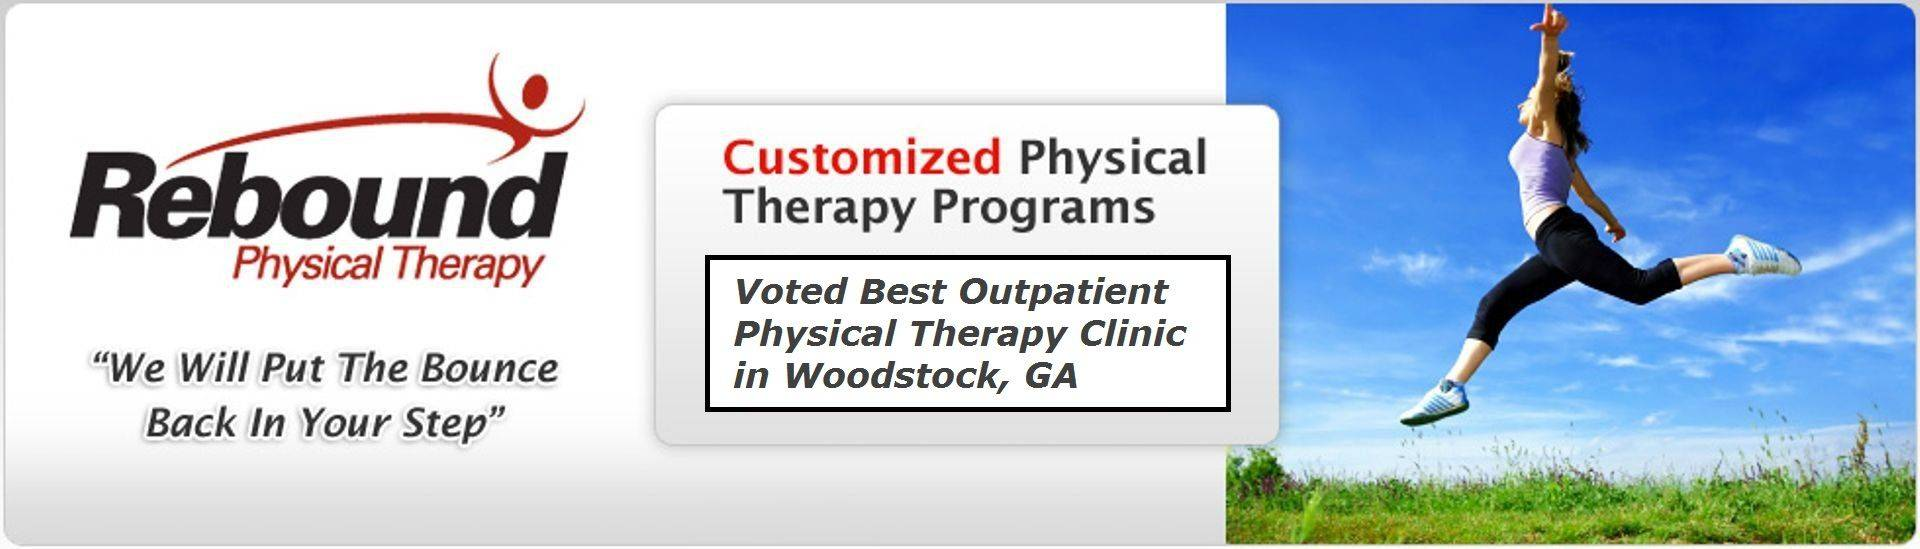 Rebound Physical Therapy Logo